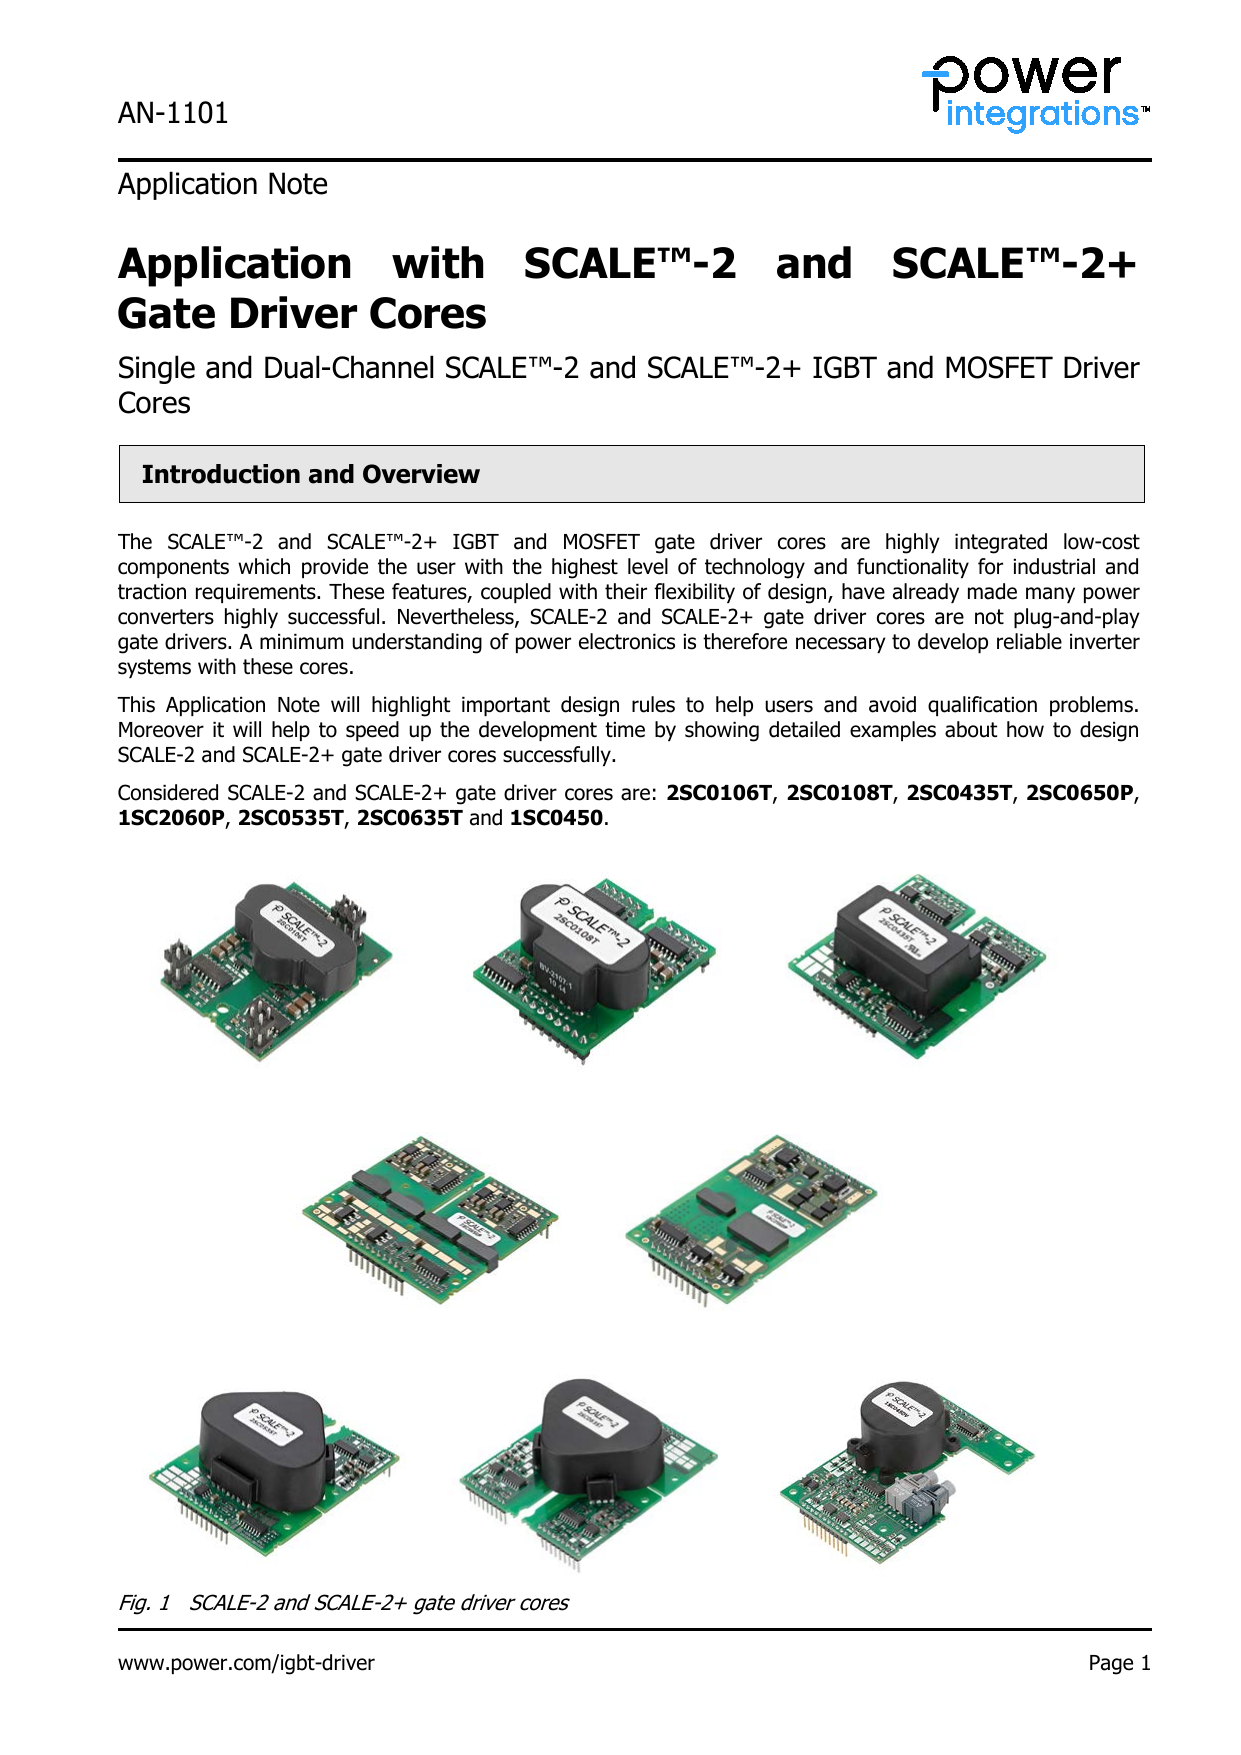 AN-1101: Application with SCALE-2 Gate Driver Cores